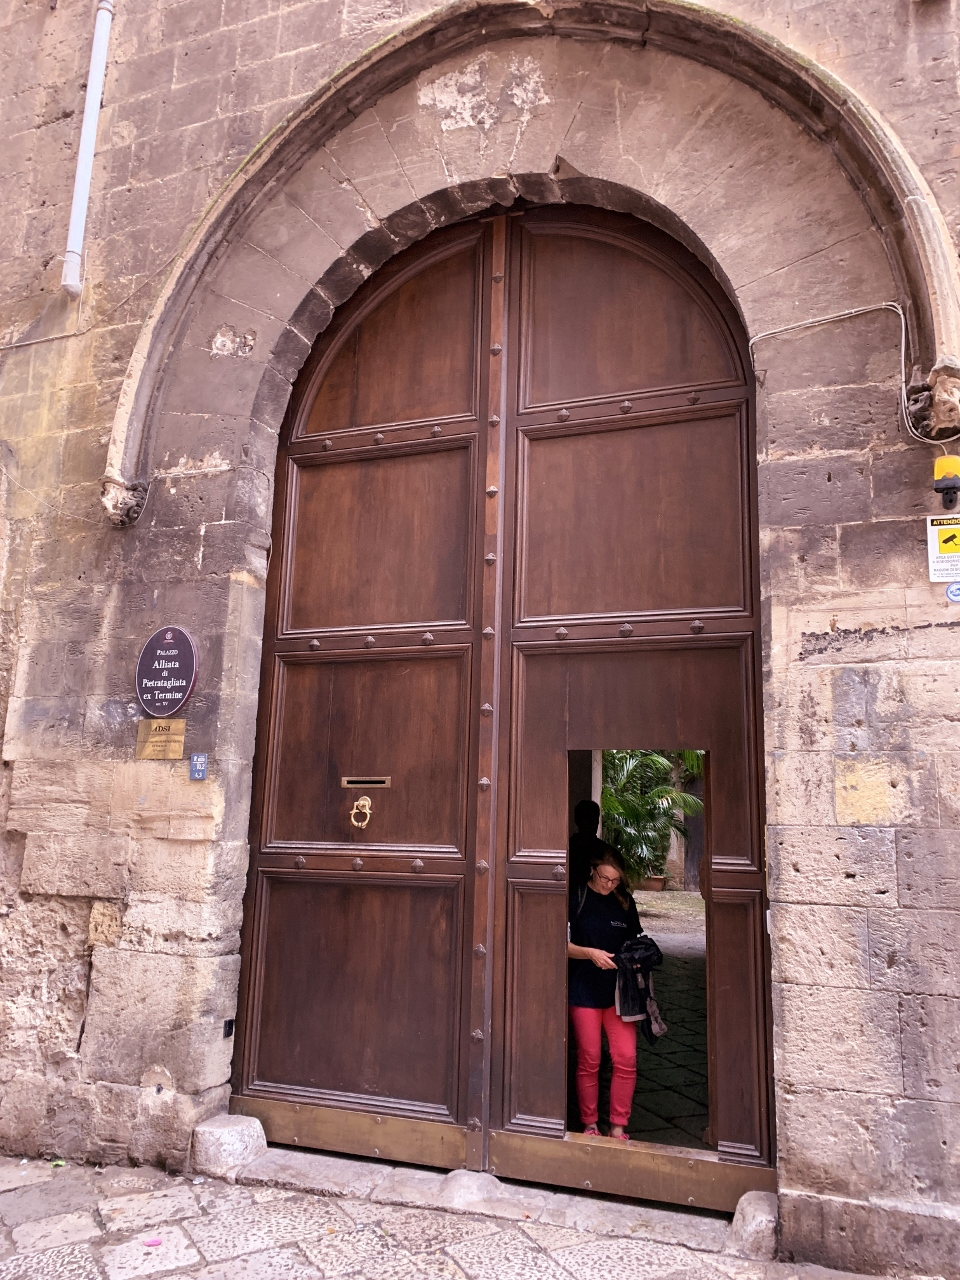 Travels to Sicily – Palermo & Monreale (Part 3 of 3) Image 19